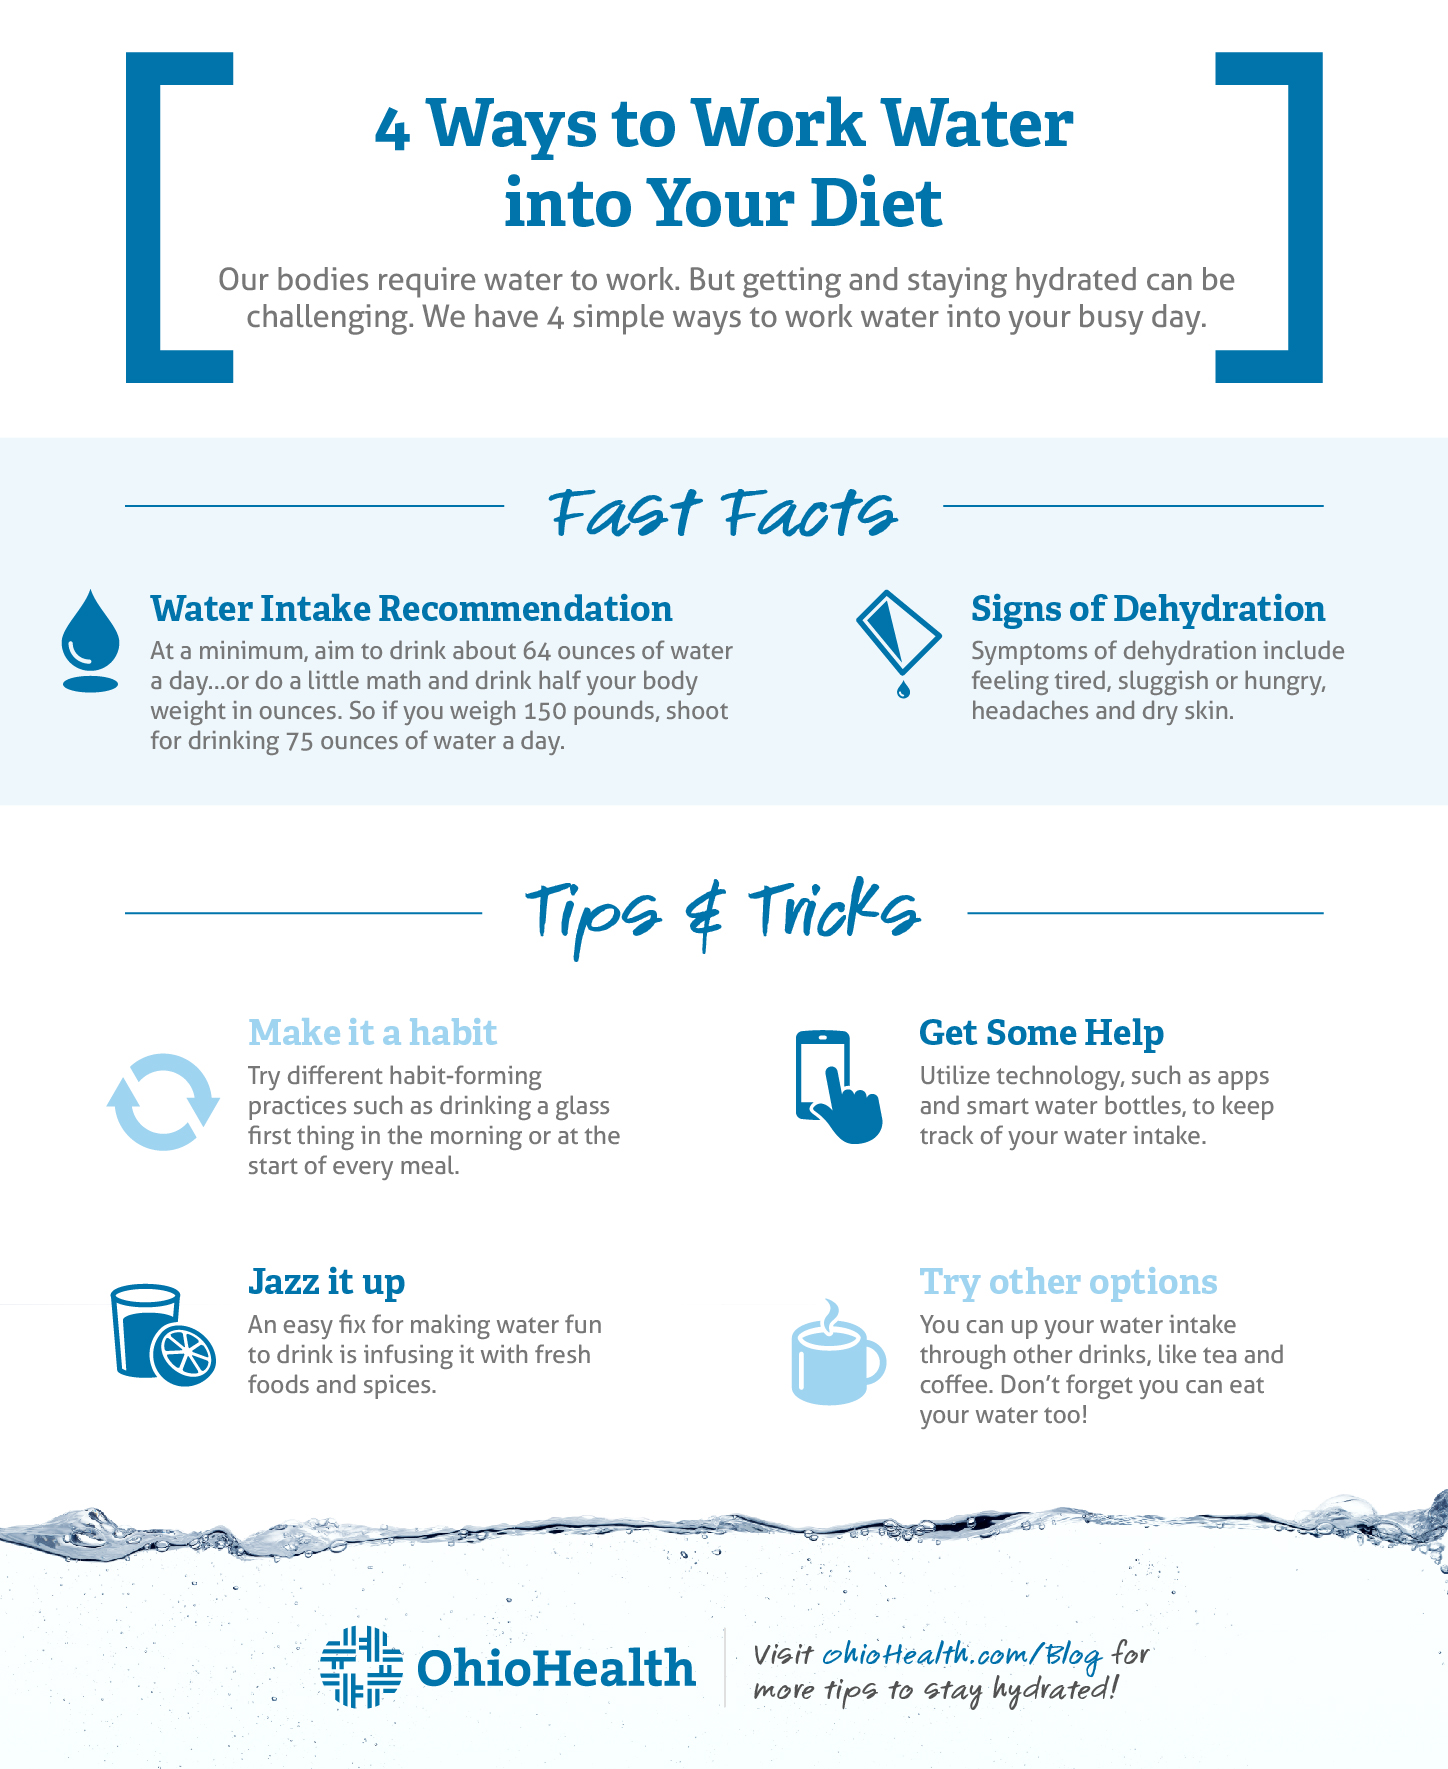 Ways to Work Water into Your Diet